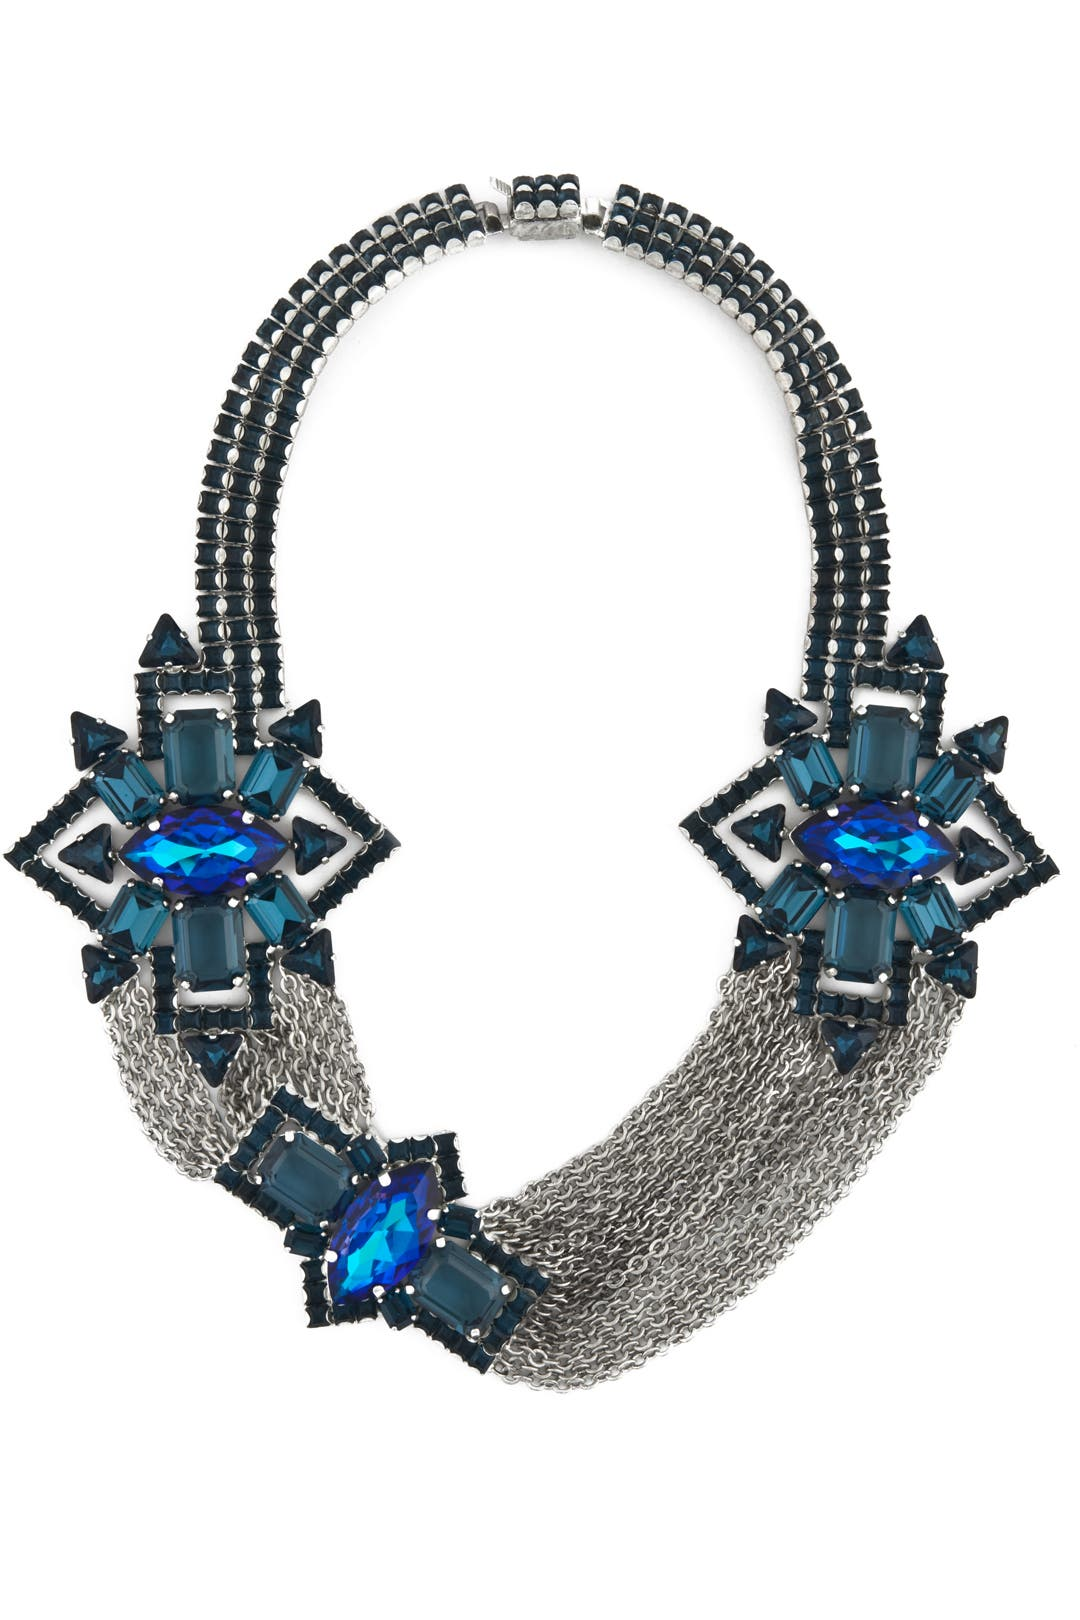 Midnight Star Necklace by Rodrigo Otazu